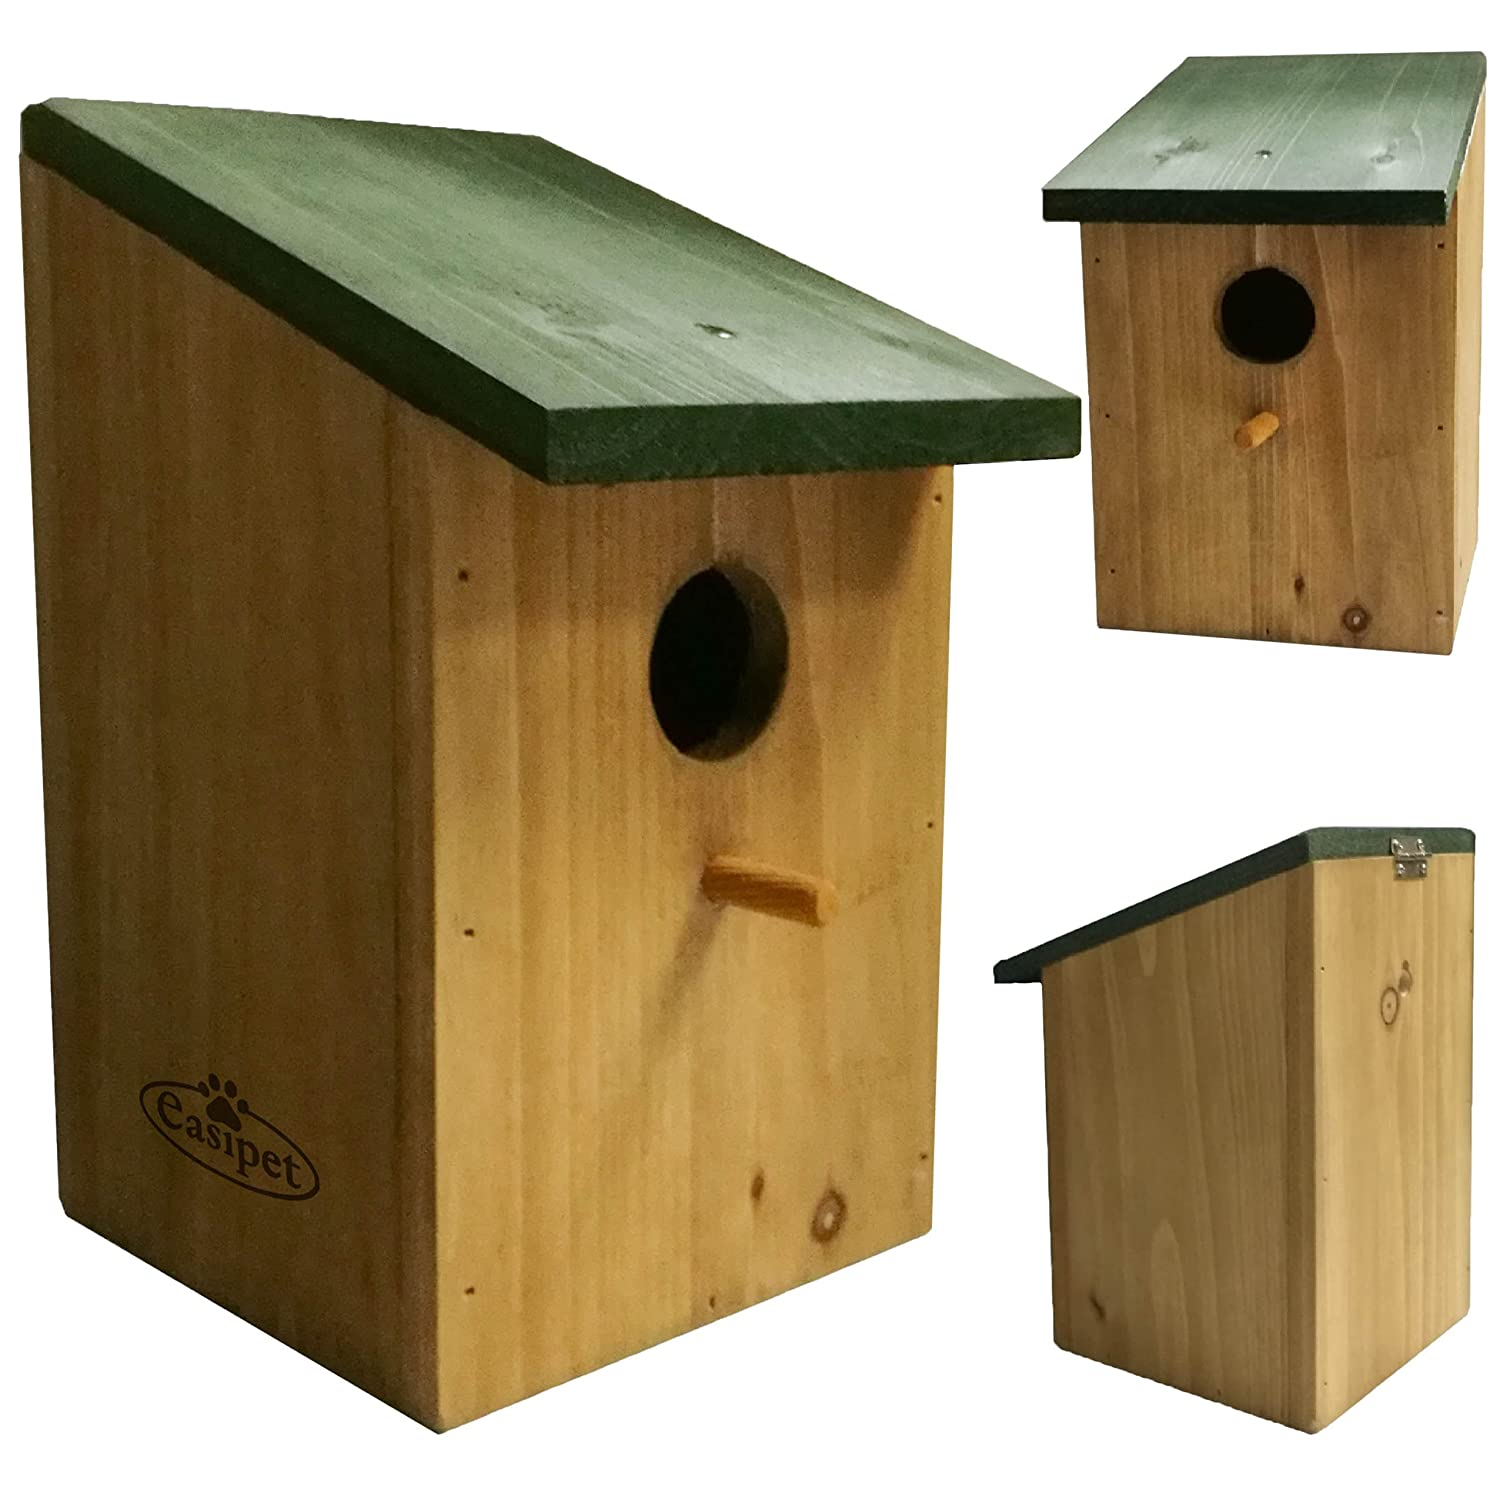 Easipet Traditional Wooden Nest Box for Small Birds i.e. Robin, Blue Tit, Sparrow (4 pcs) FED21982